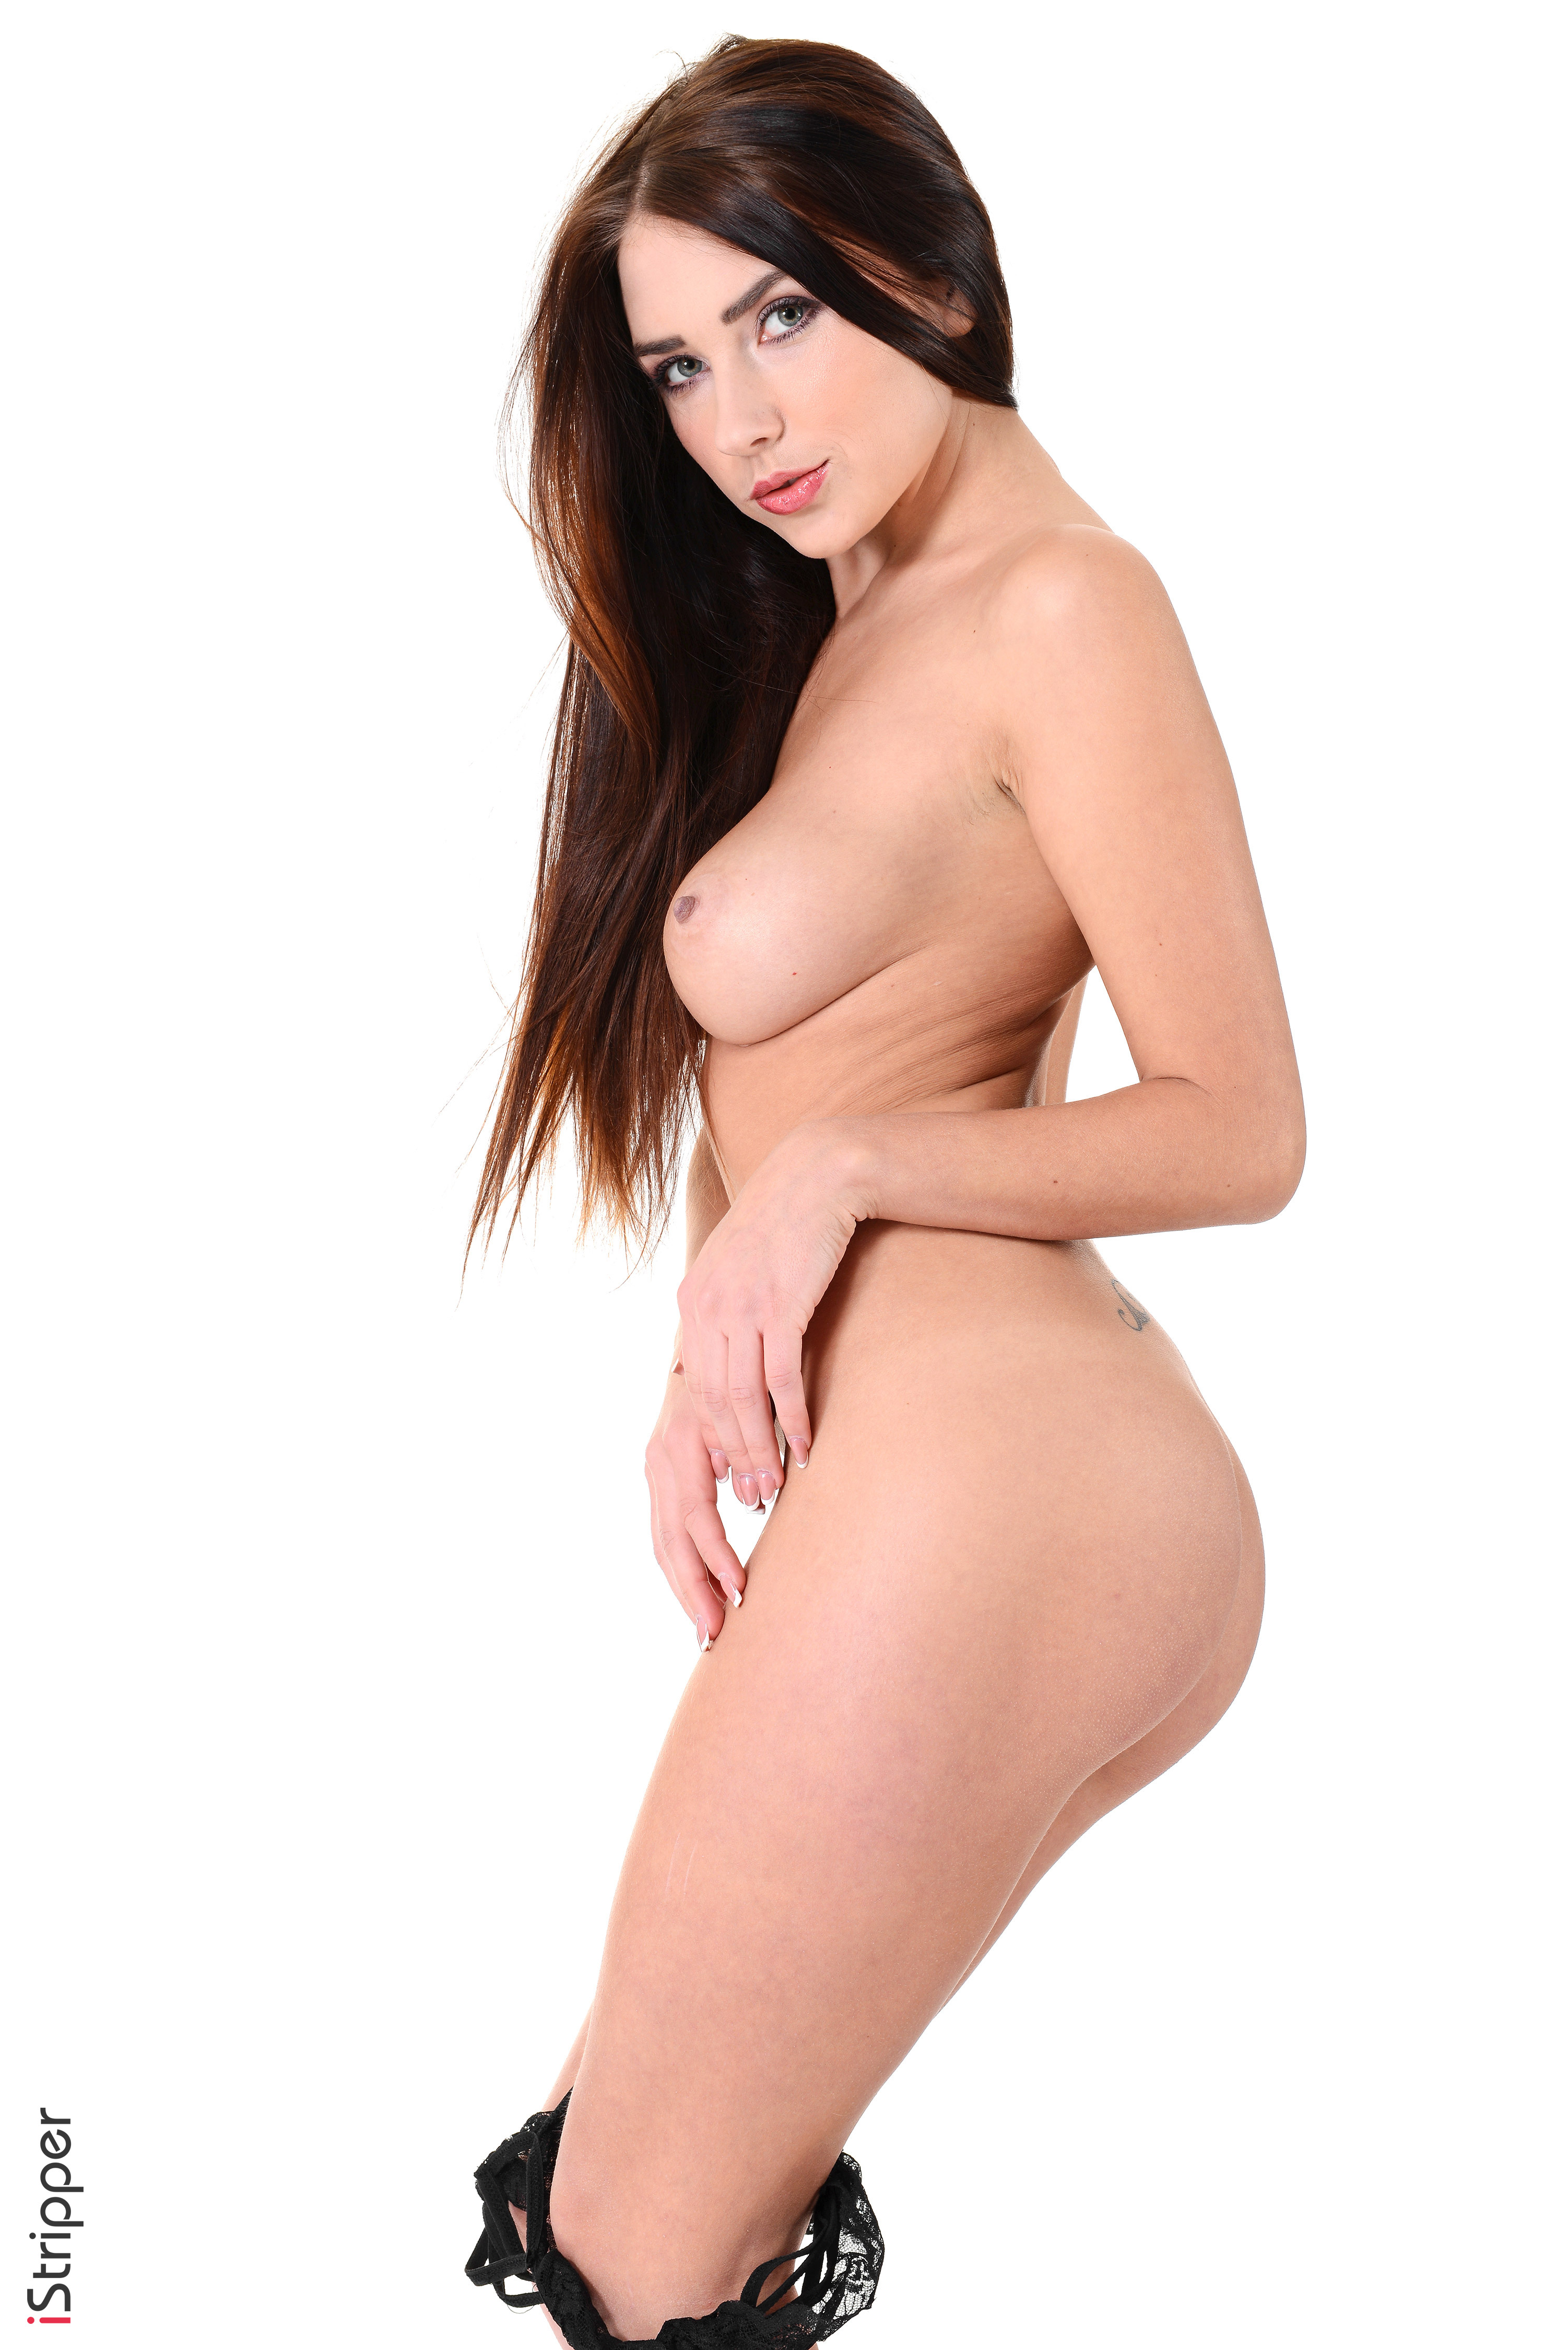 Pussy Julija Steponaviciute naked (63 photo), Pussy, Fappening, Boobs, cleavage 2020